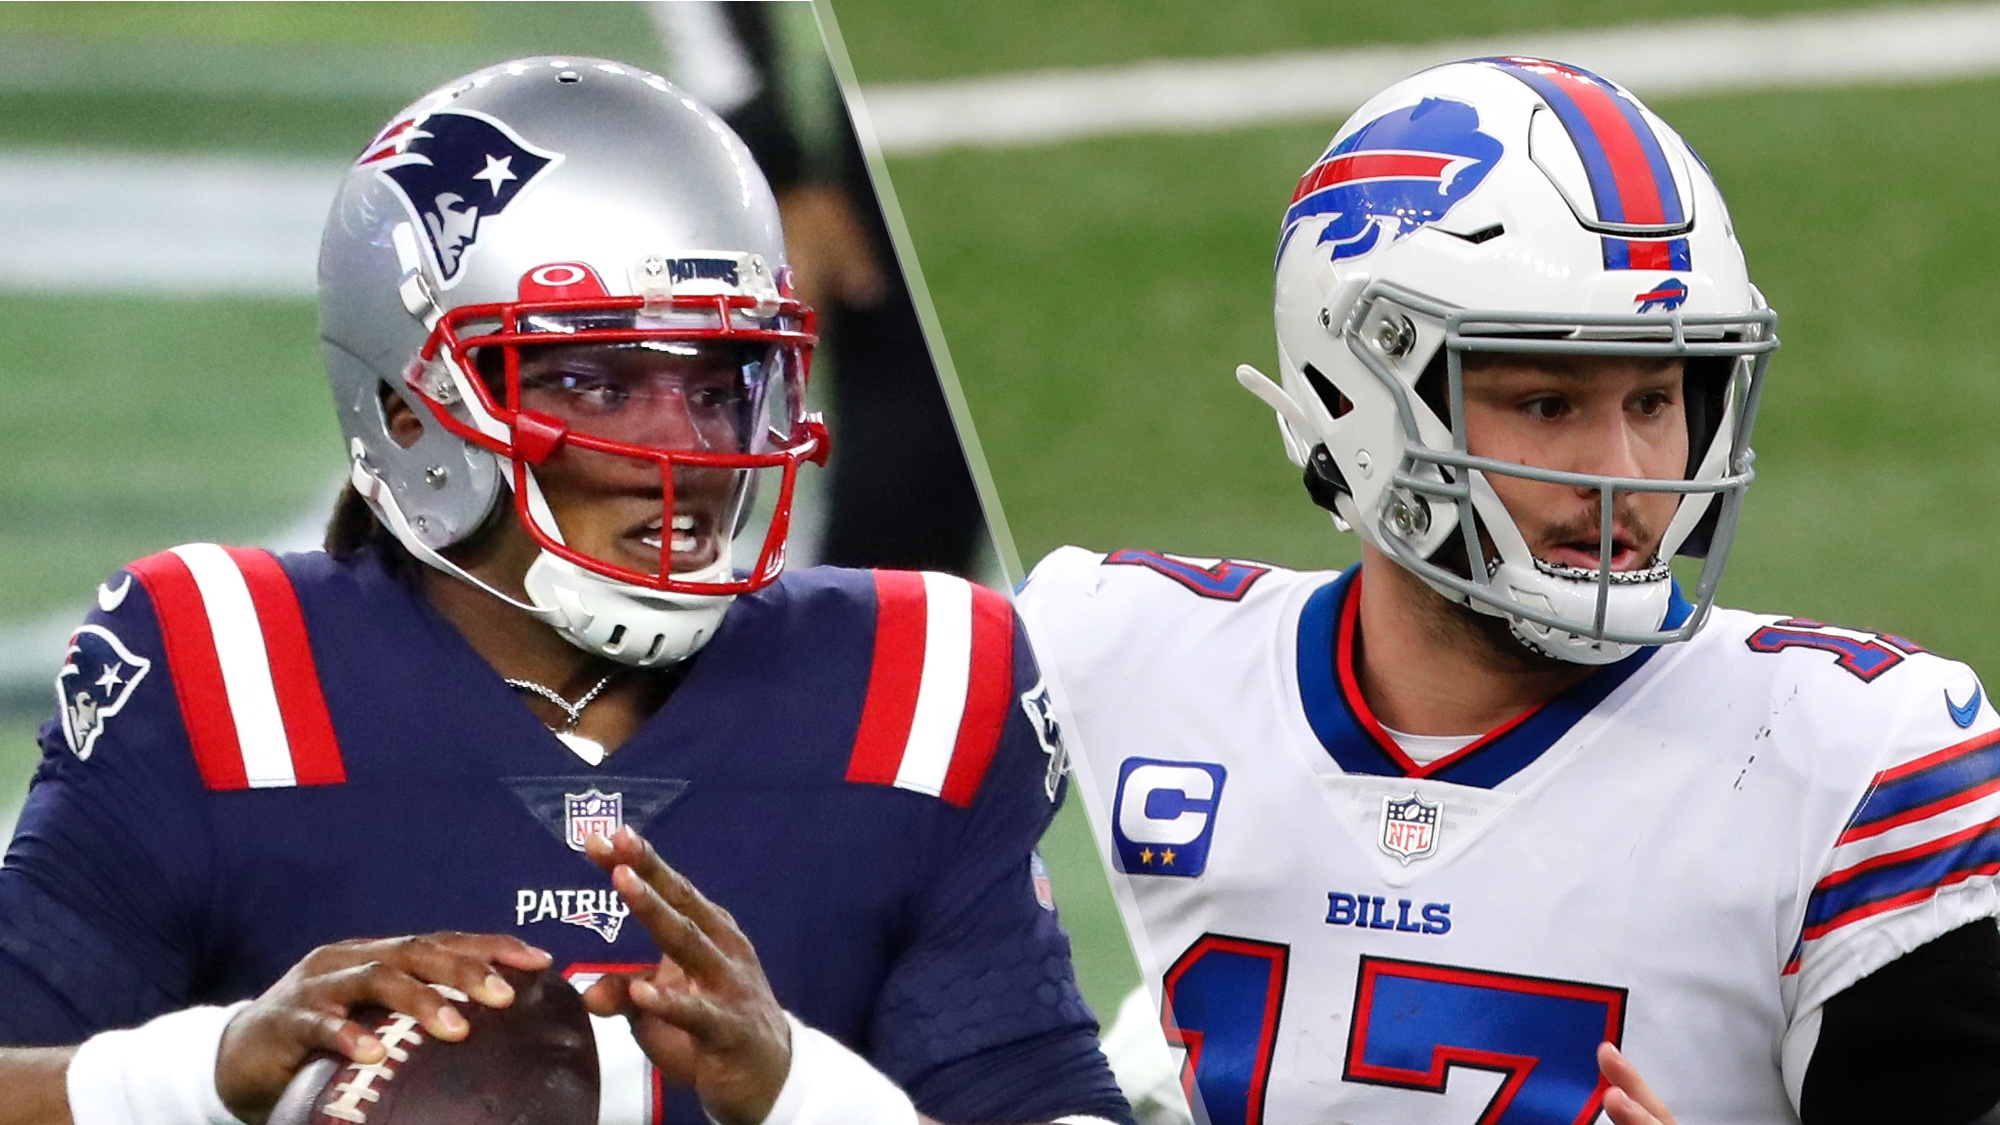 Patriots Vs Bills Live Stream How To Watch Nfl Week 8 Game Online Tom S Guide